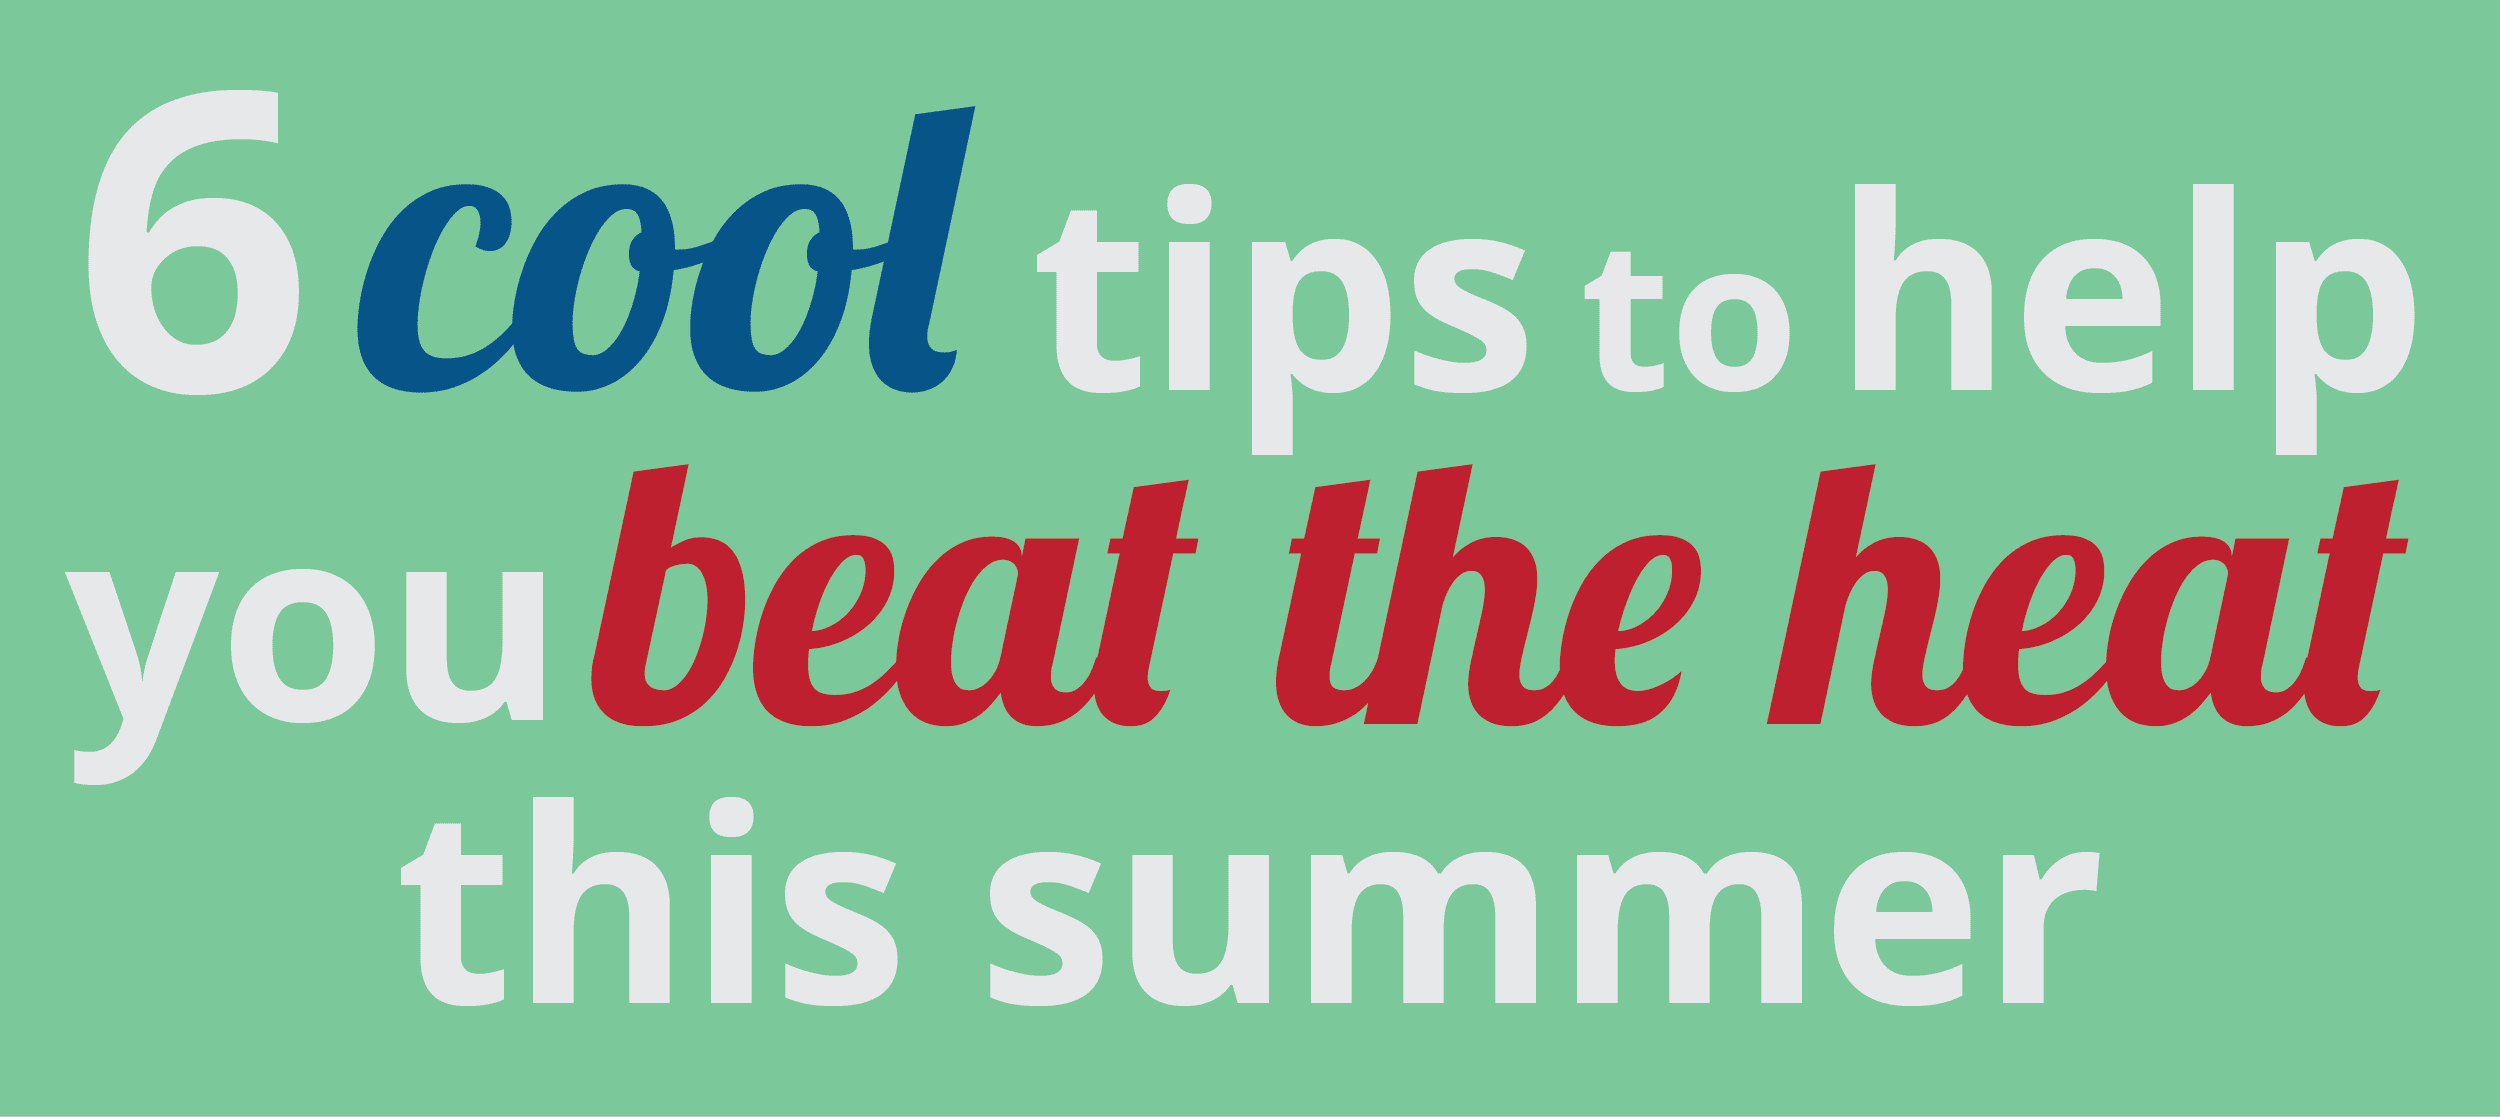 6 cool tips to beat the heat featured image